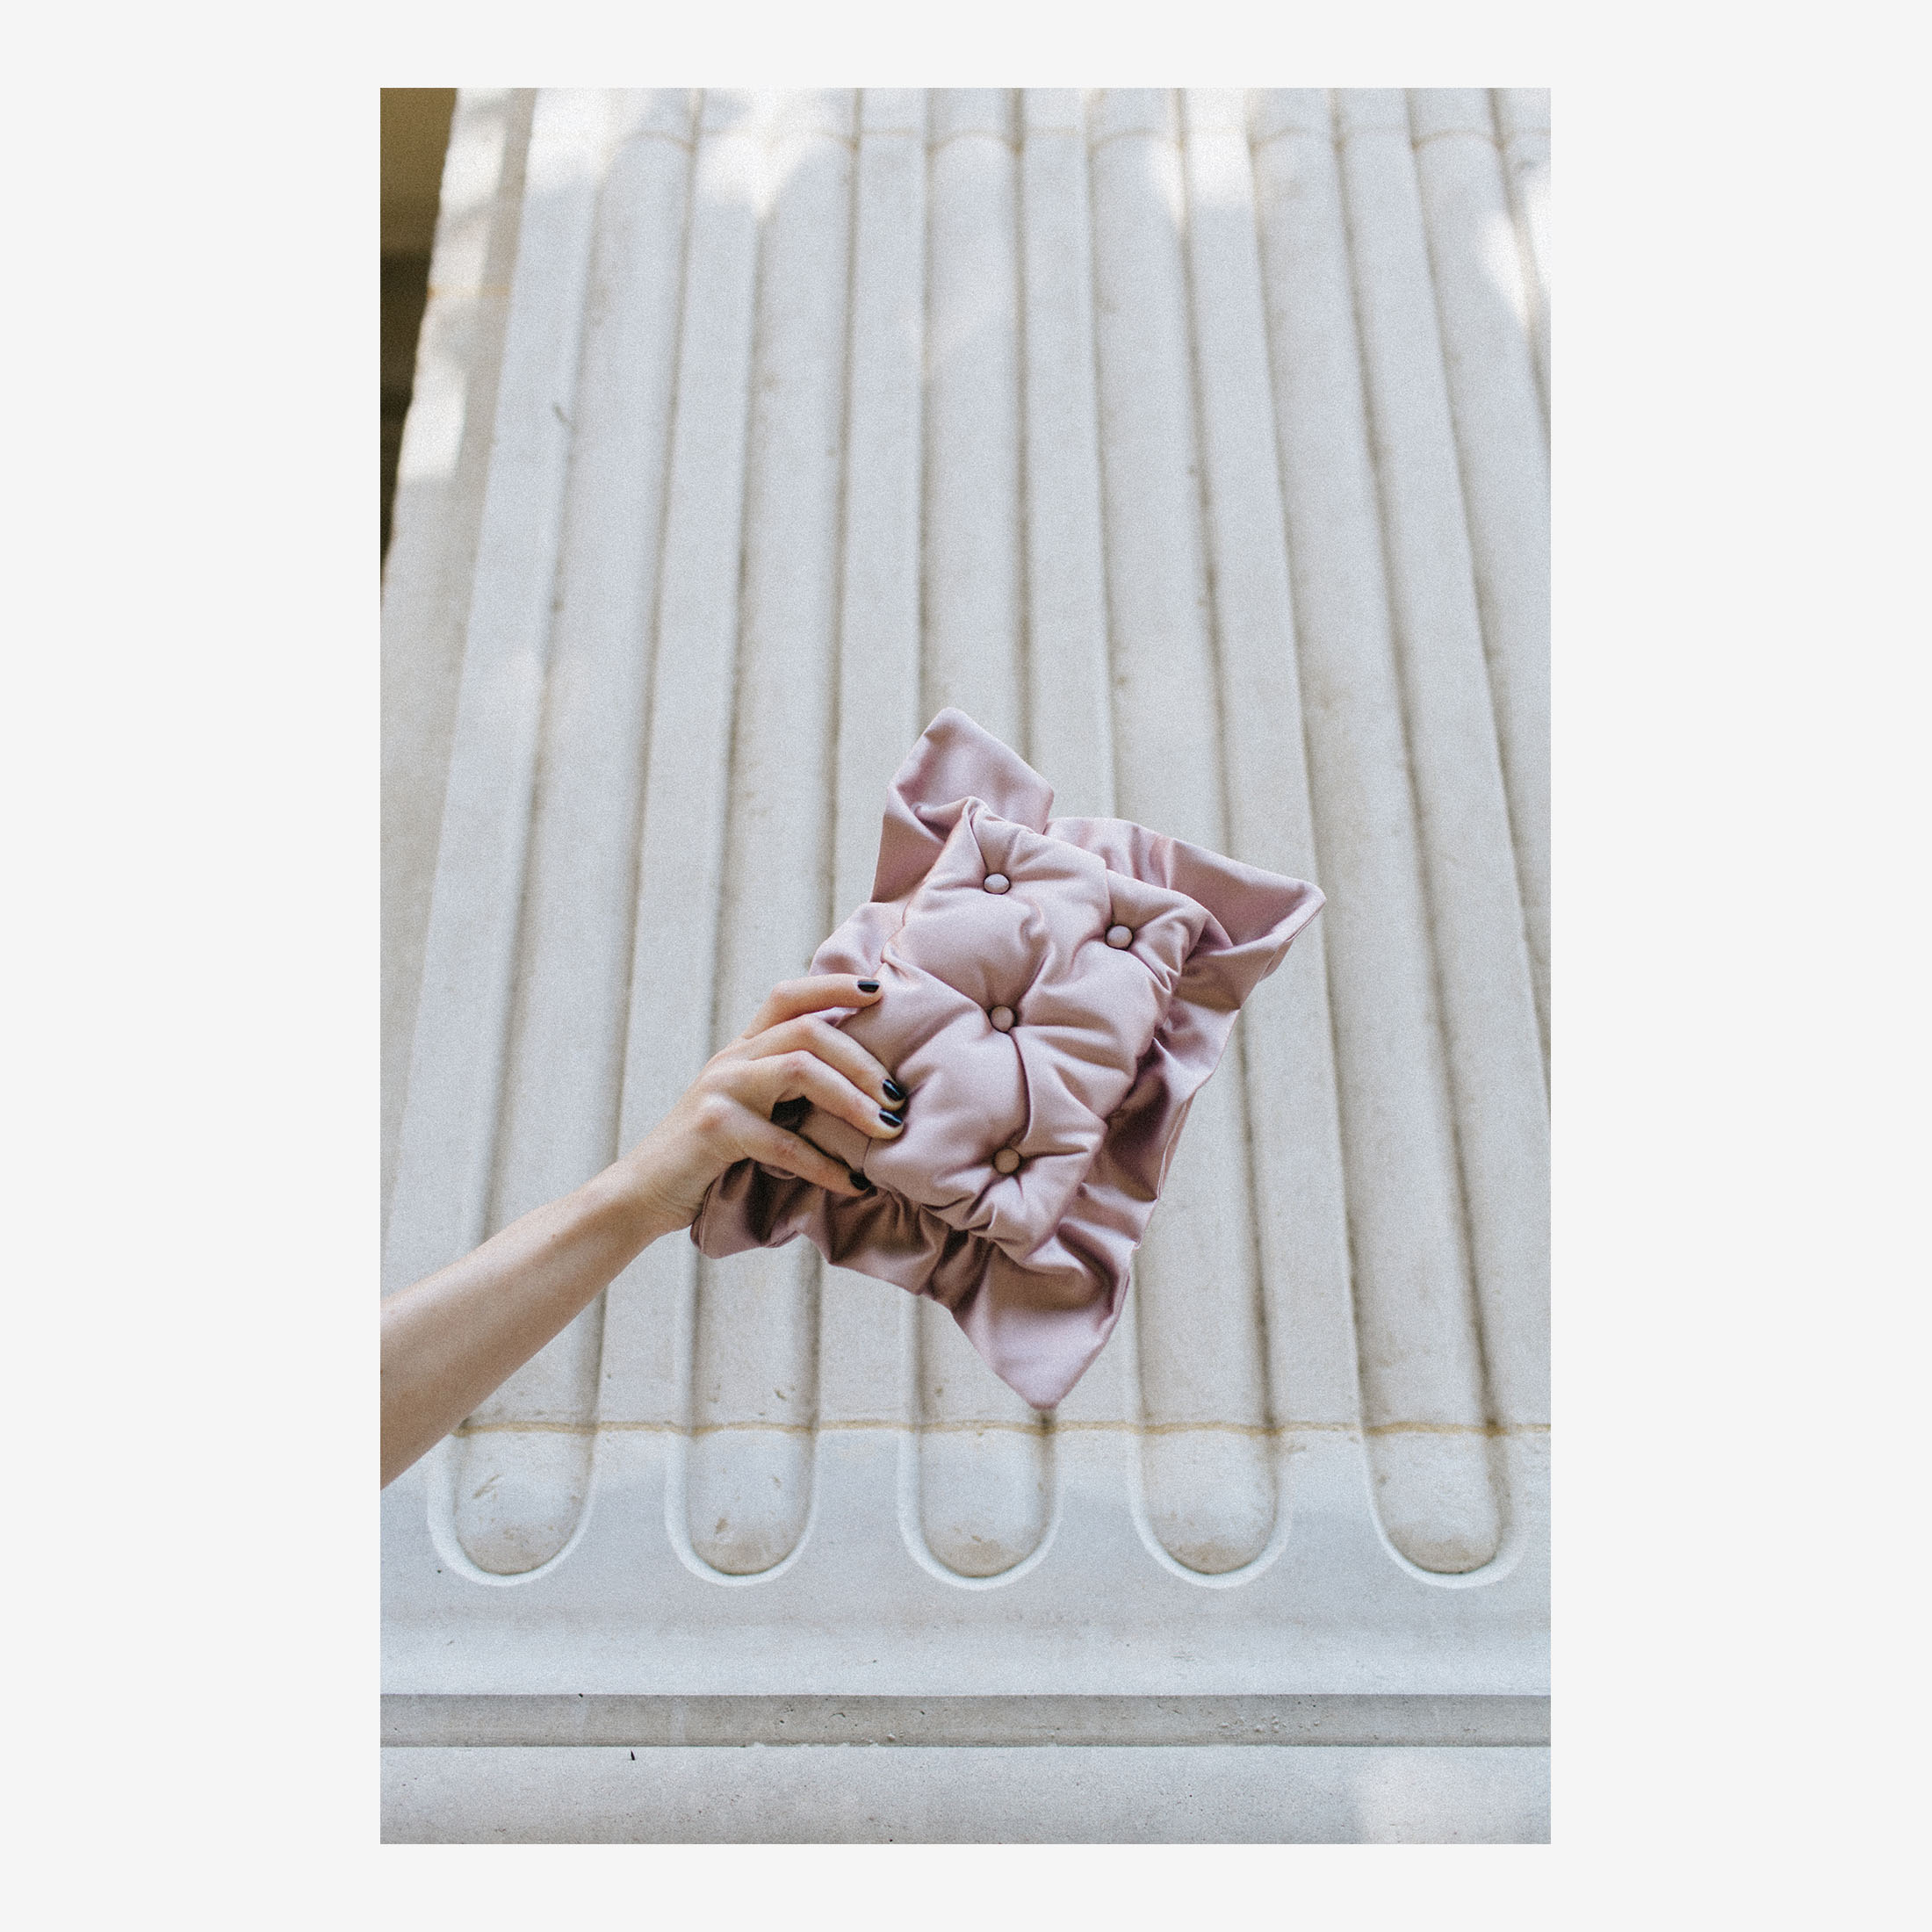 Laimushka blush pink quilted silk pillow clutch bag on the floor in Paris, Palais Royal